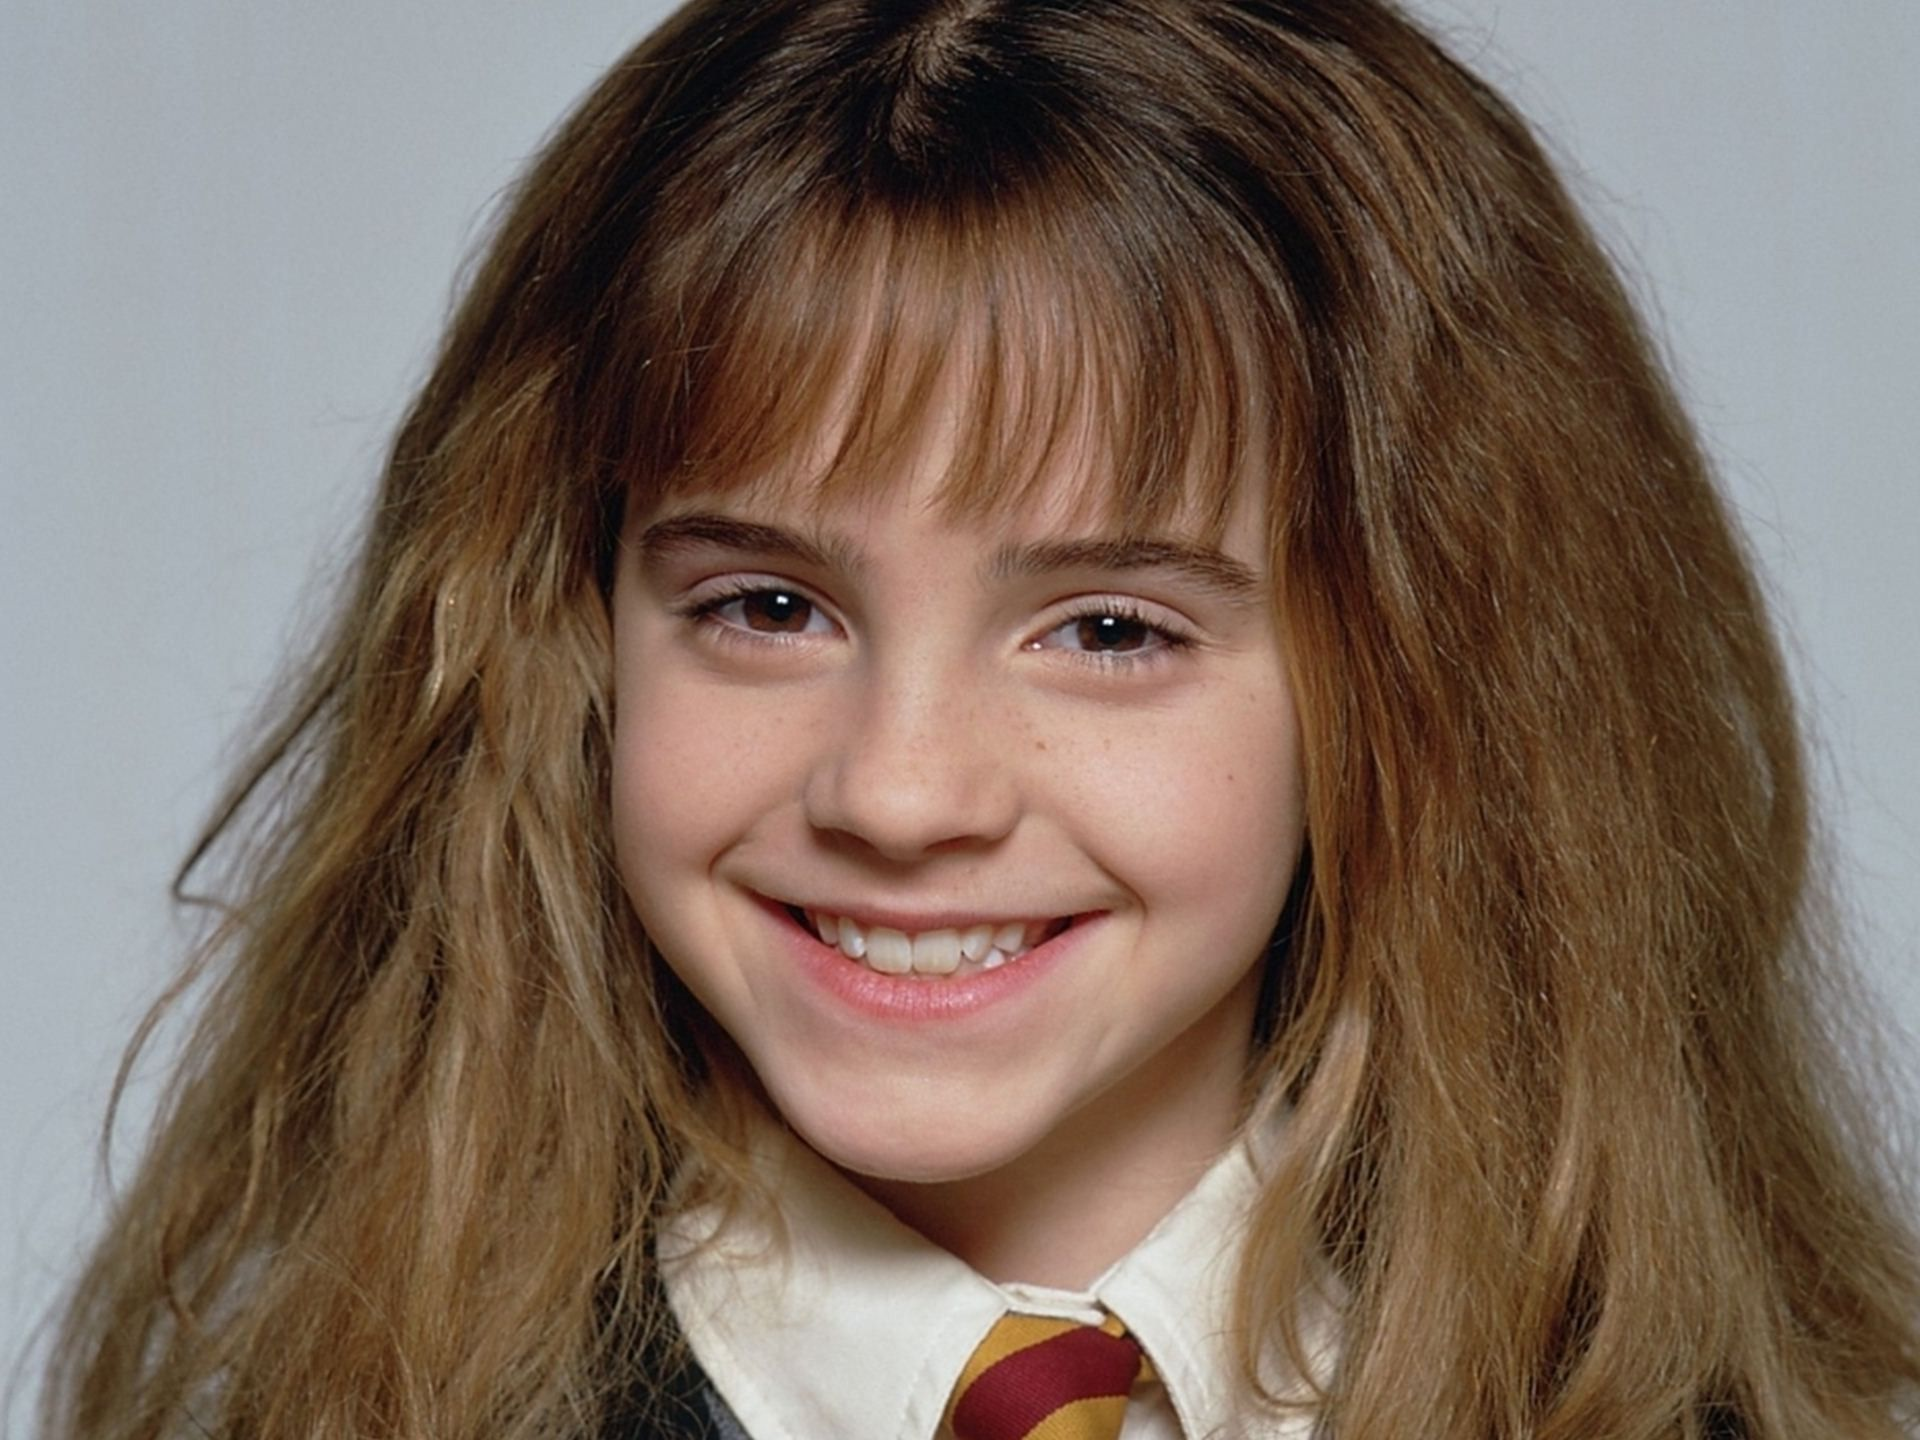 Cool Wallpaper Harry Potter Childhood - hermione-granger-childhood-wallpapers-232  Perfect Image Reference_572699.jpg?w\u003d1180